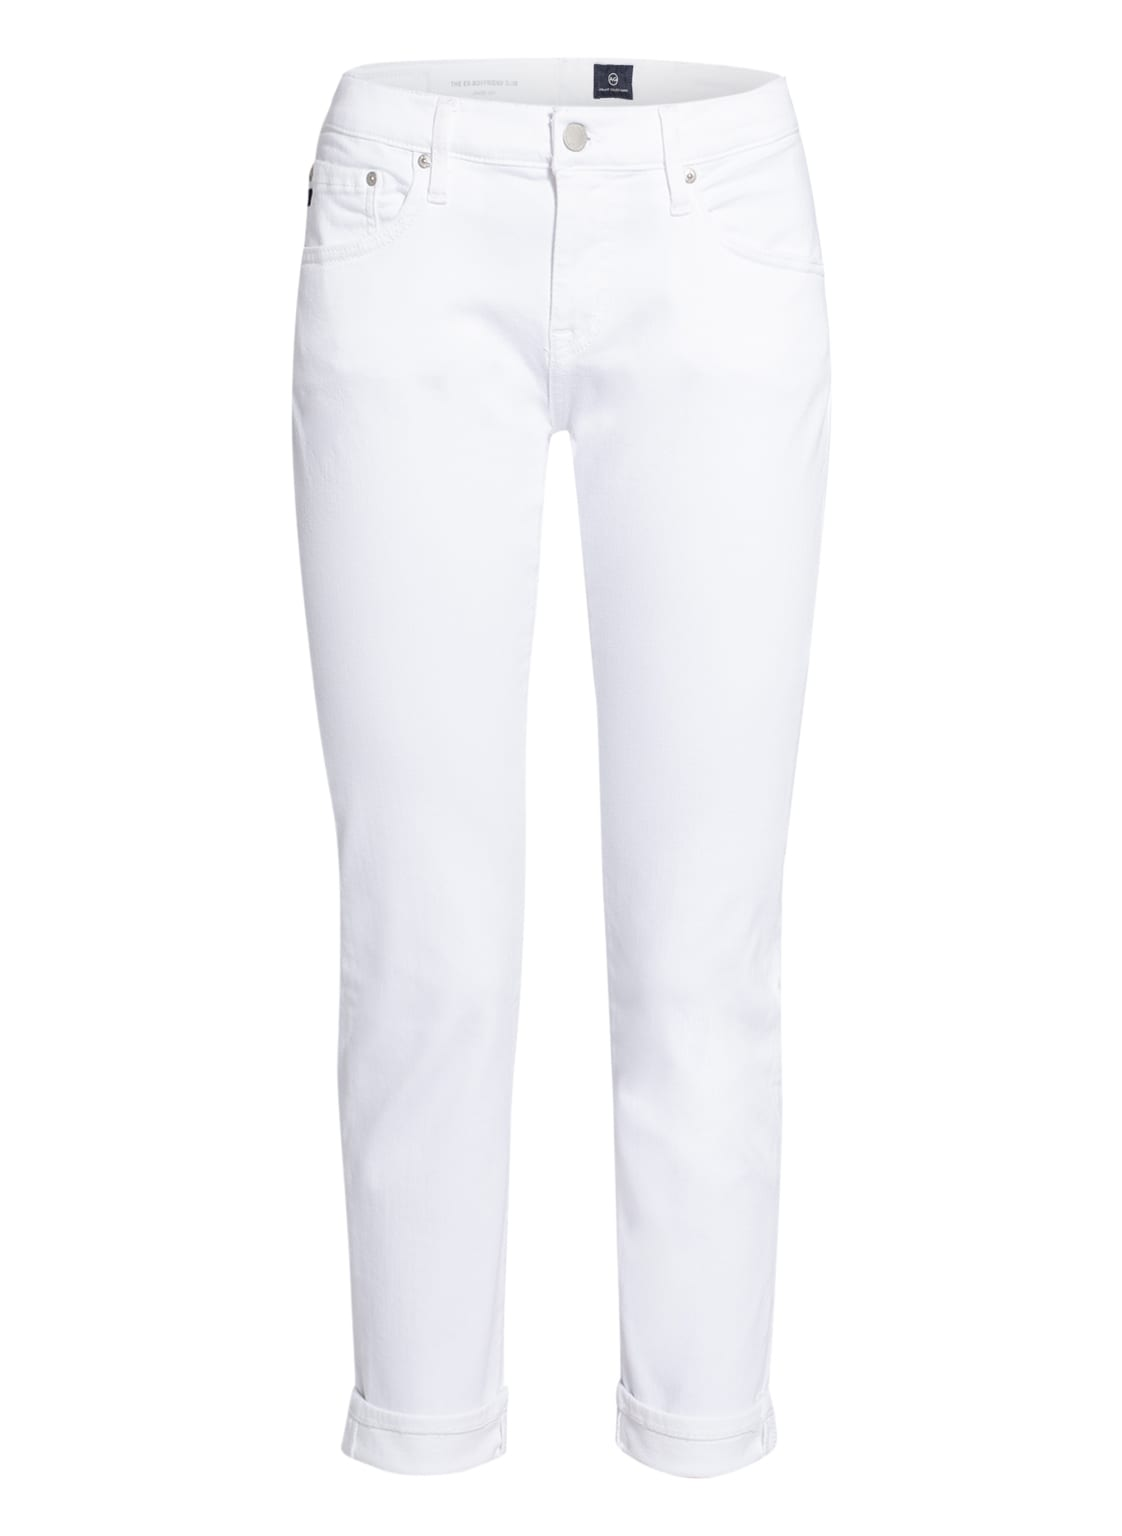 Image of Ag Jeans 7/8-Skinny Jeans The Ex-Boyfriend Slim weiss